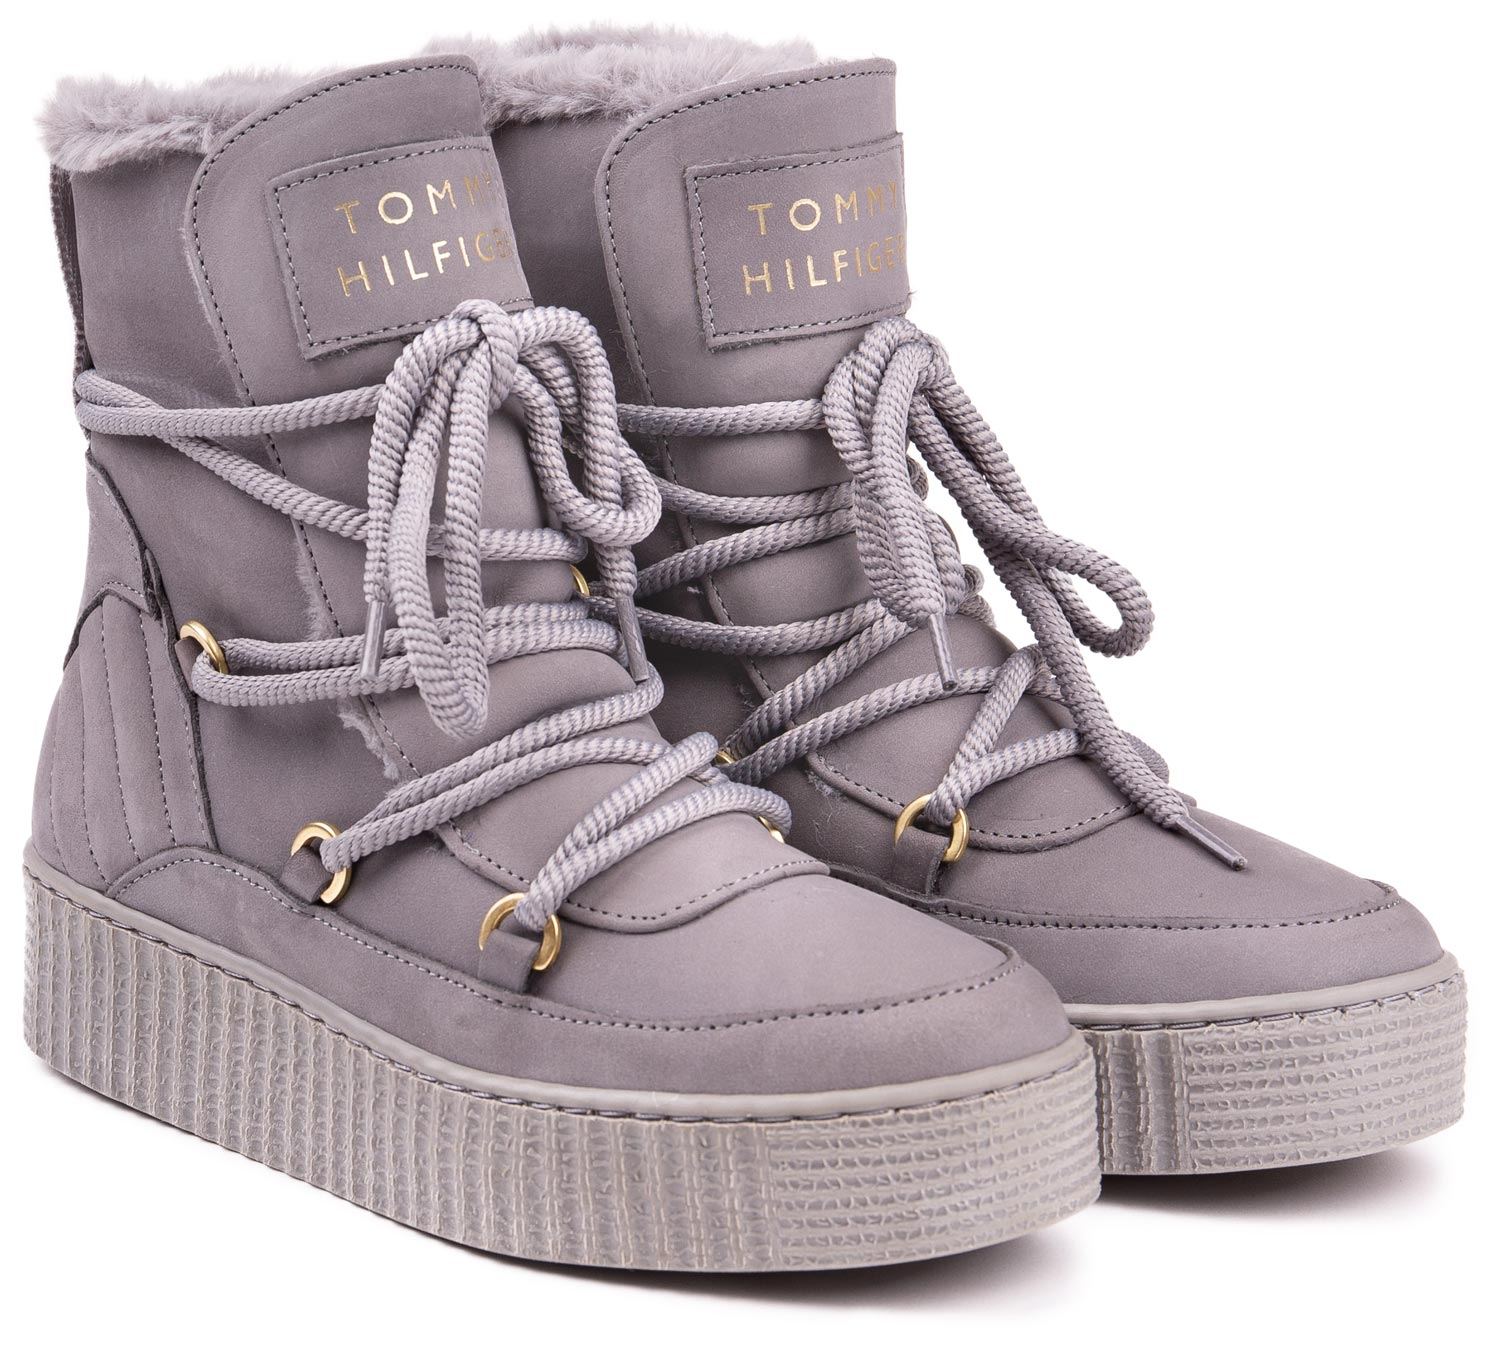 Tommy Hilfiger Grey Leather Ankle High Shoes Cosy Bootie